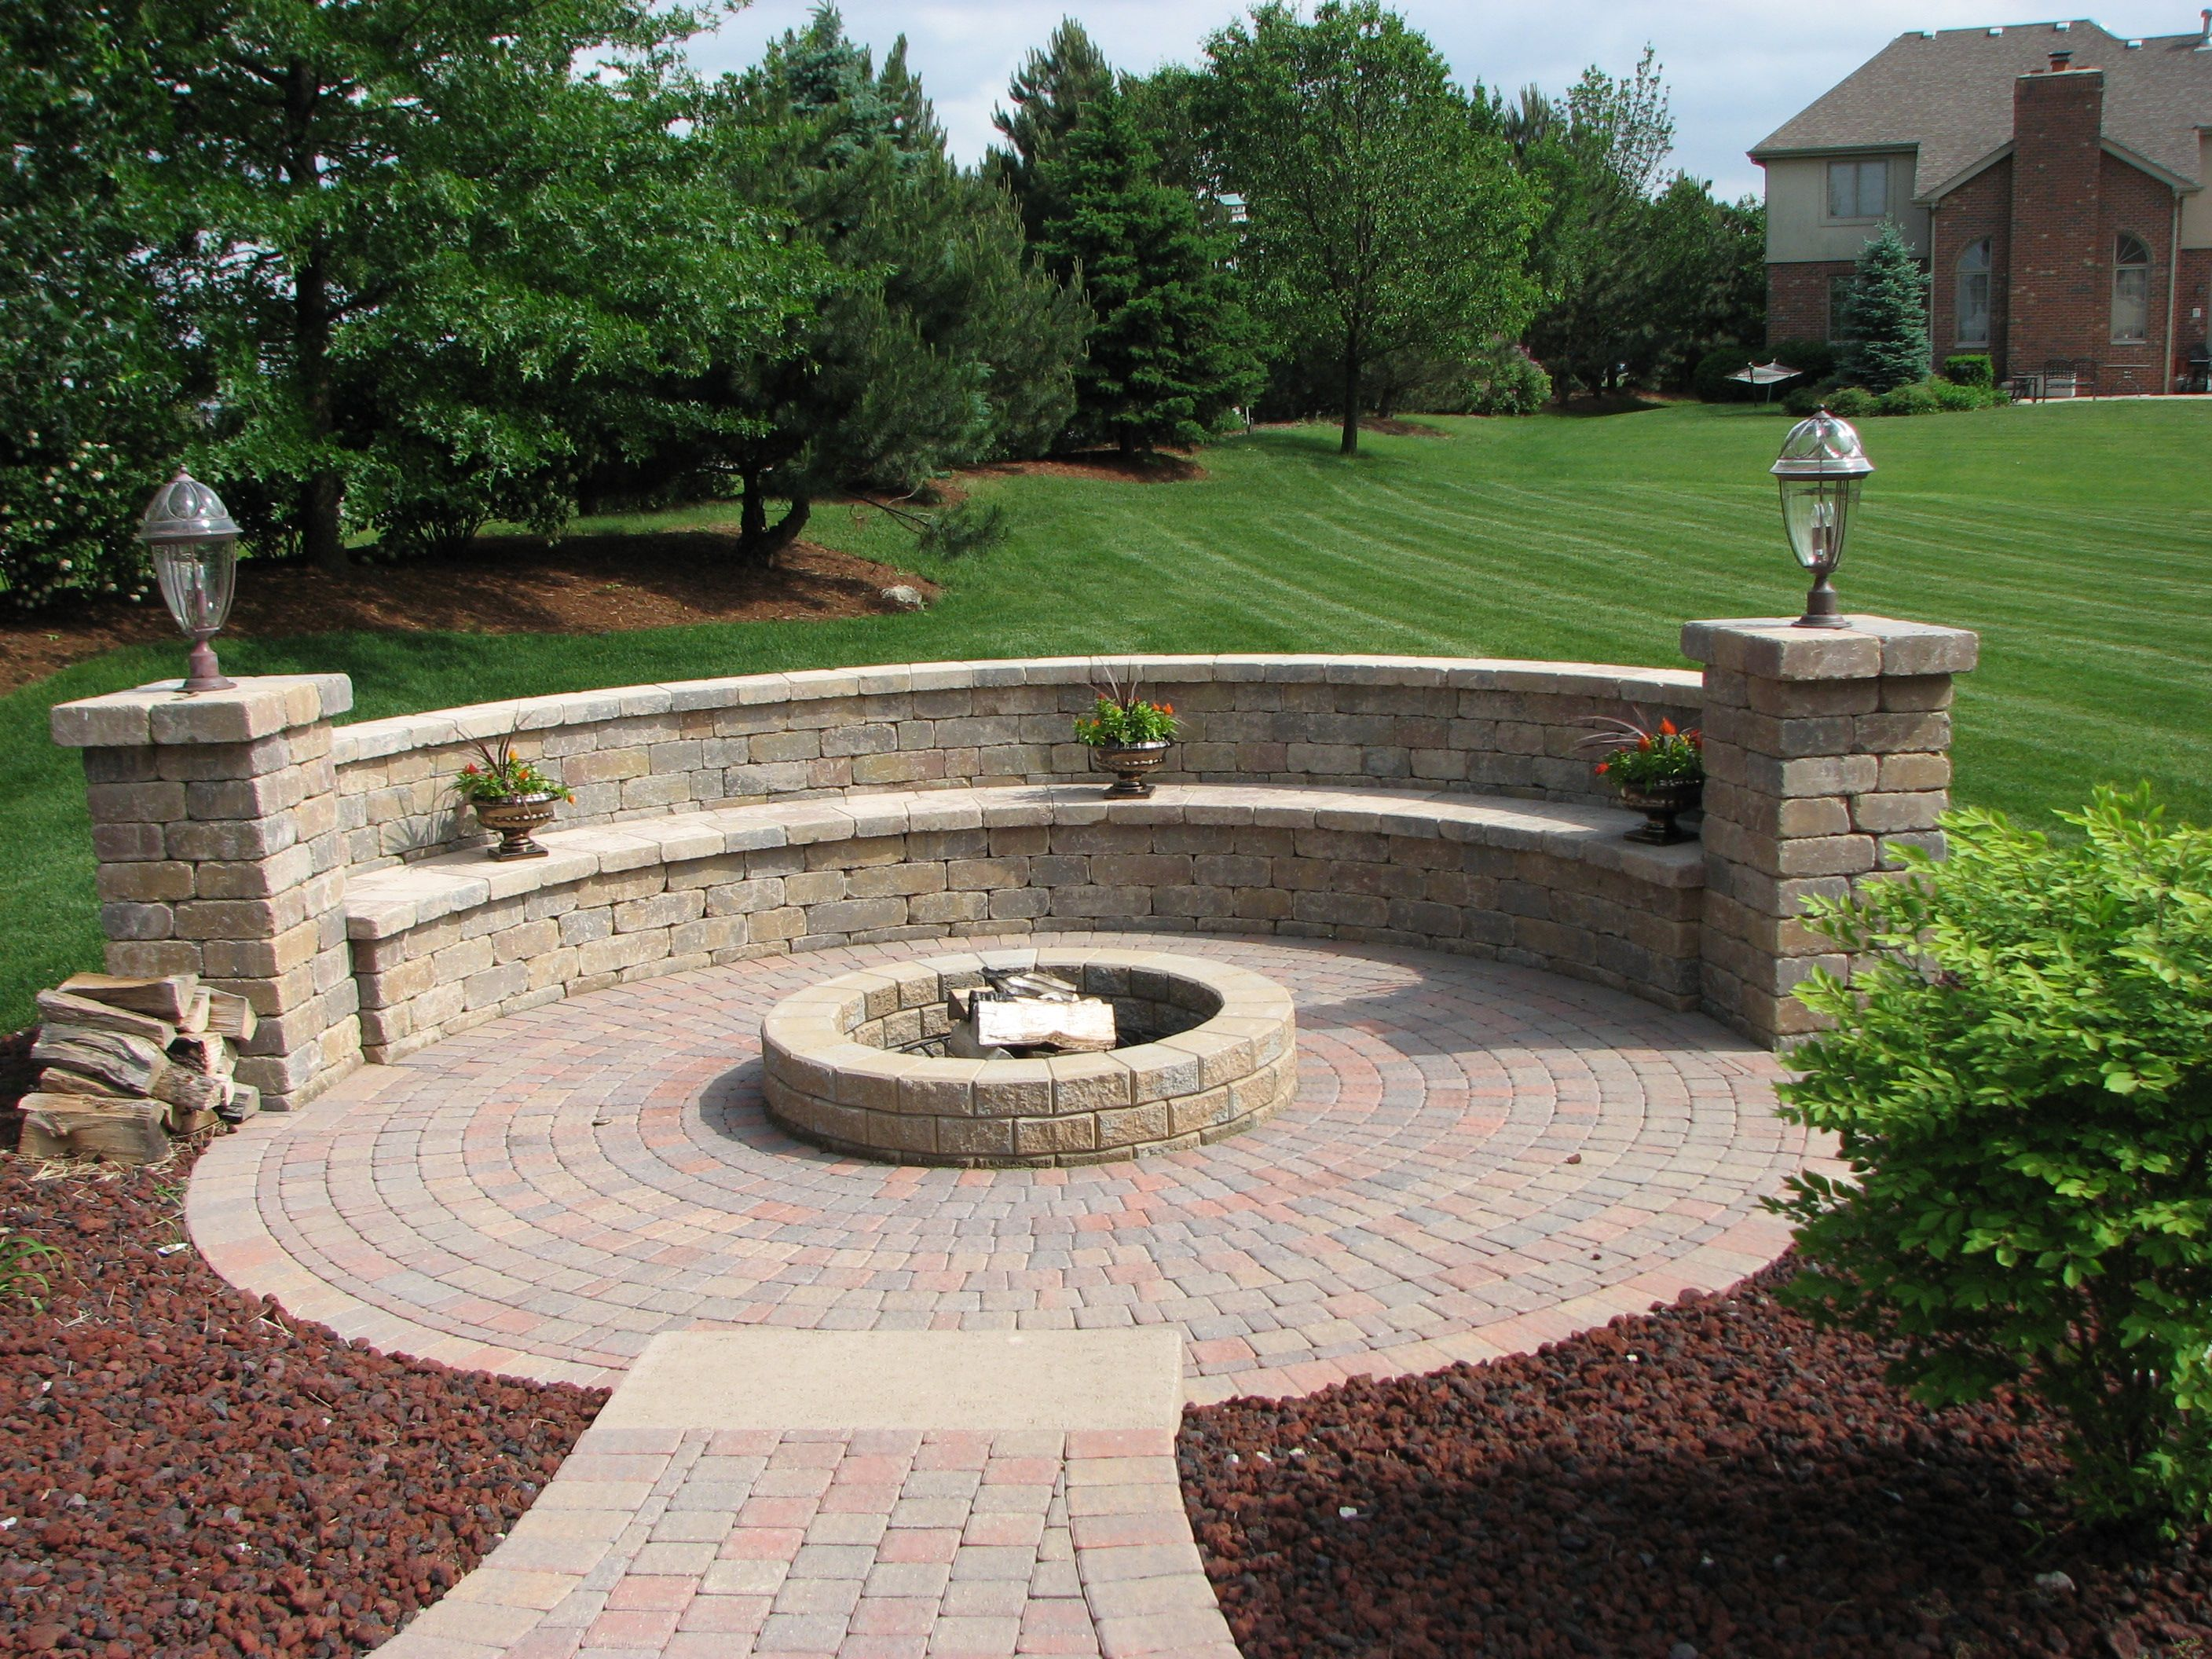 Inspiration for Backyard Fire Pit Designs | Round fire pit, Yard ...